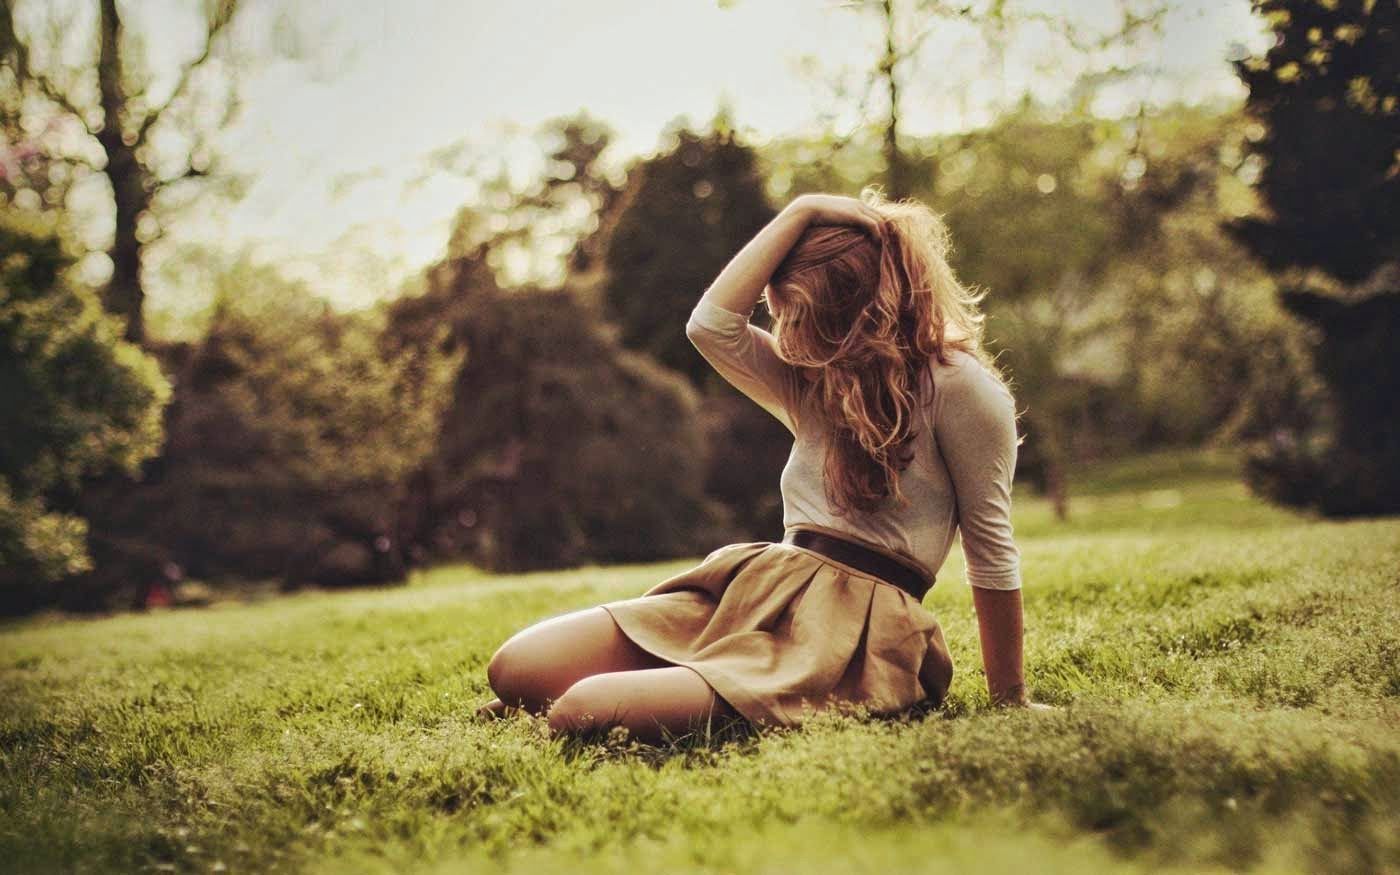 Girl in Nature Photography